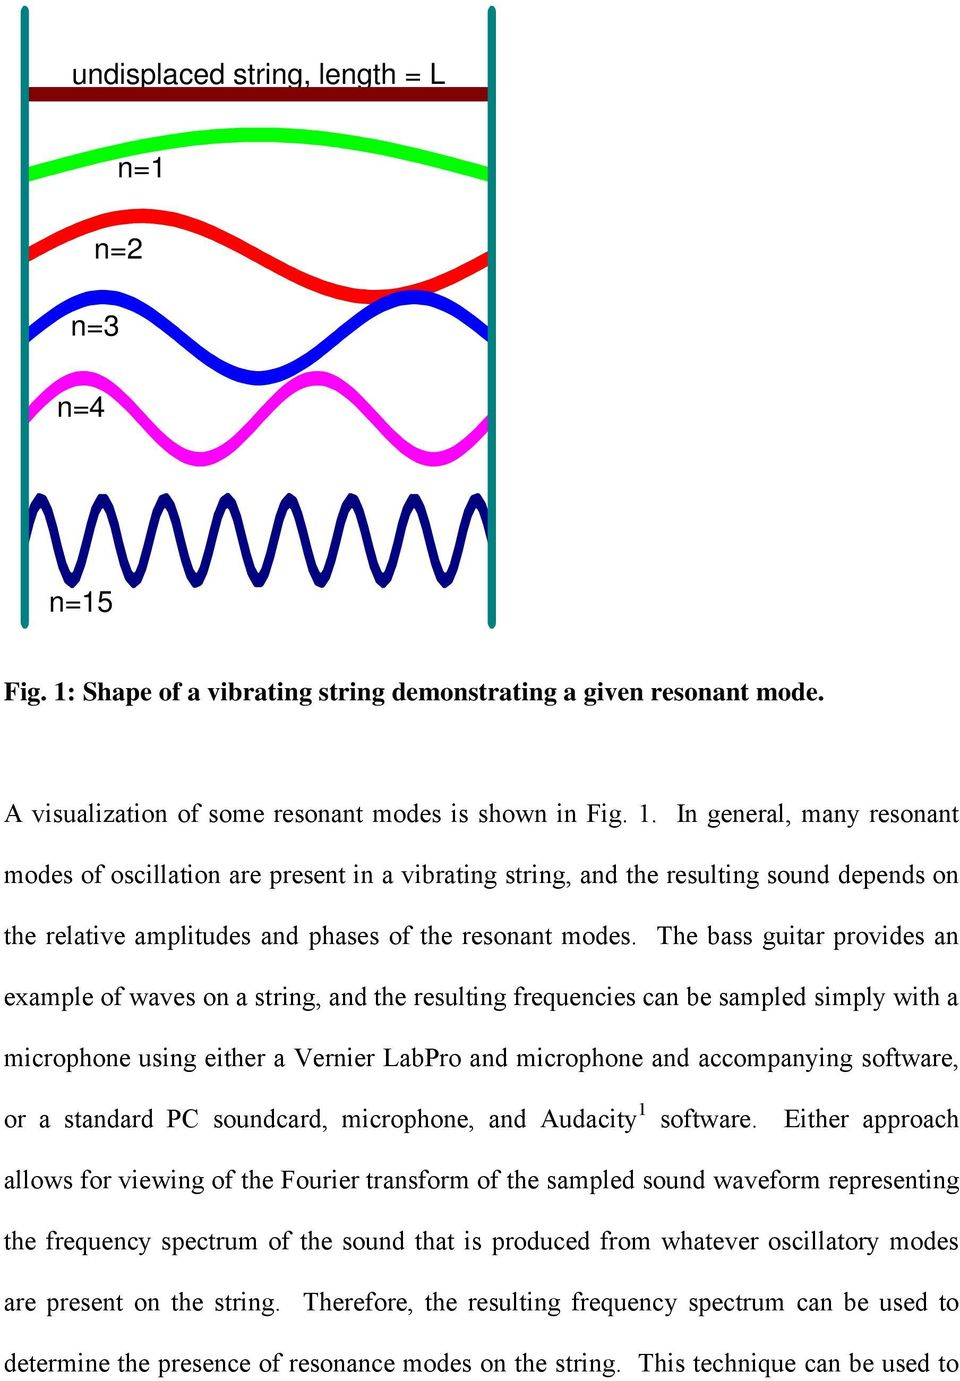 In general, many resonant modes of oscillation are present in a vibrating string, and the resulting sound depends on the relative amplitudes and phases of the resonant modes.